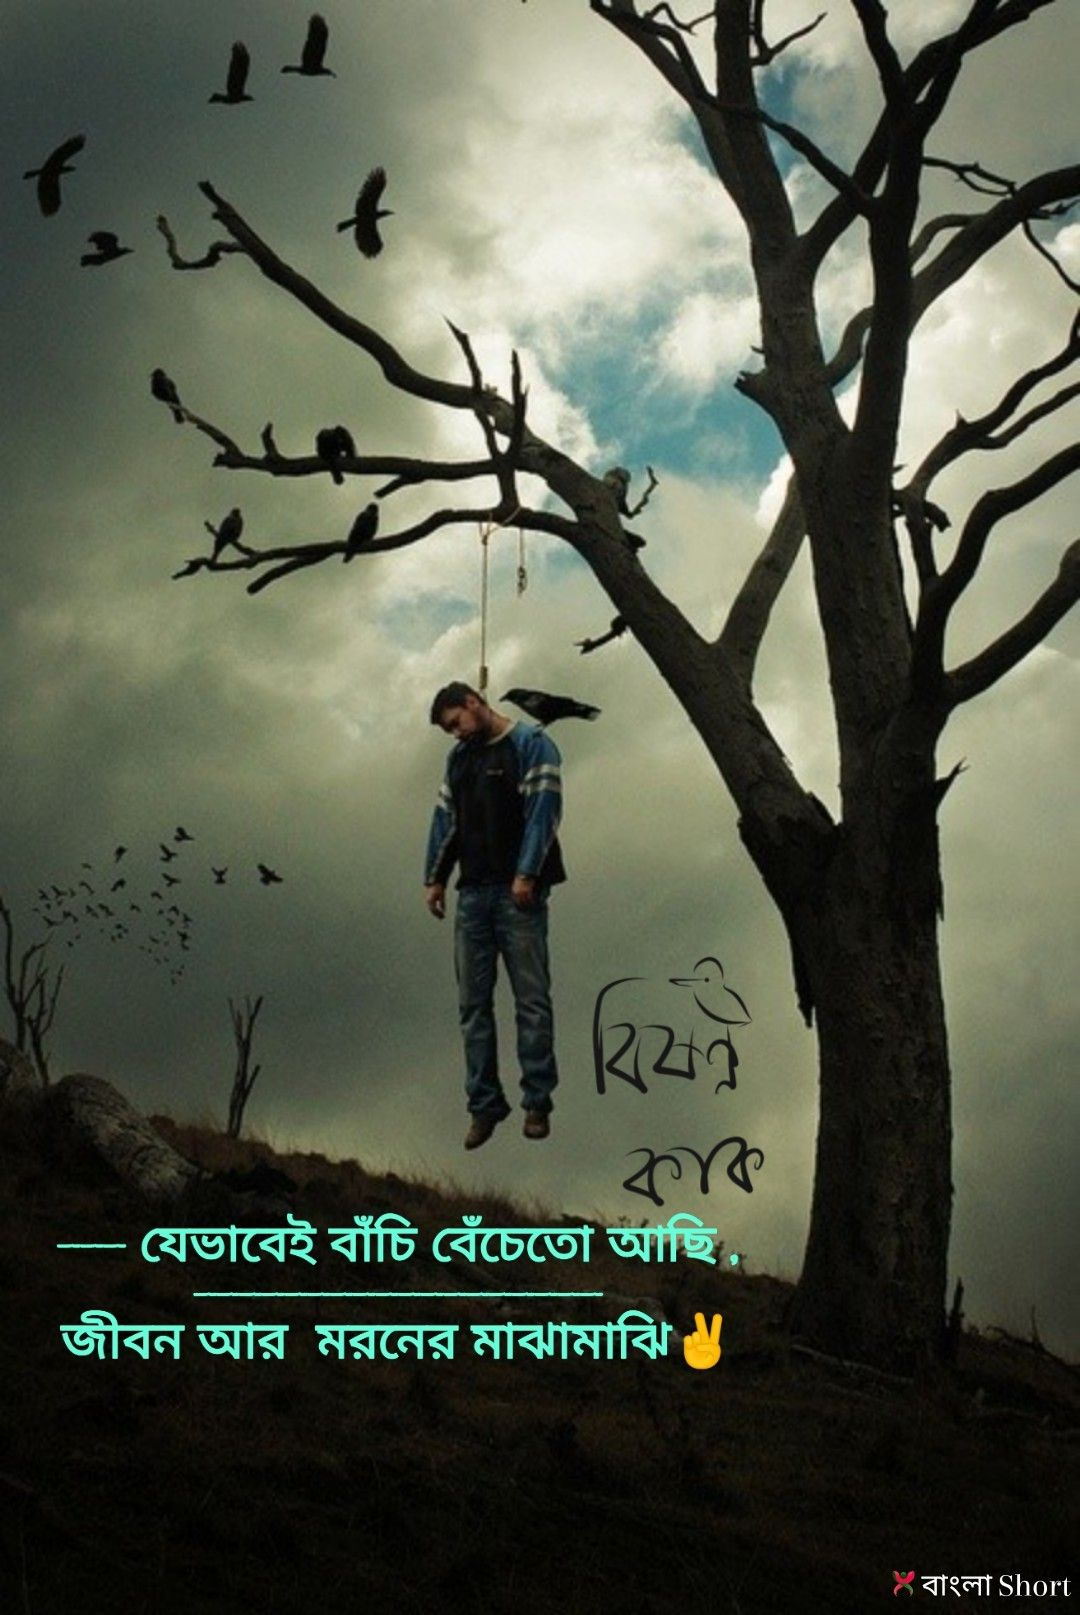 Pin by Pradyut Ghosh on Bangla quotes Bangla love quotes